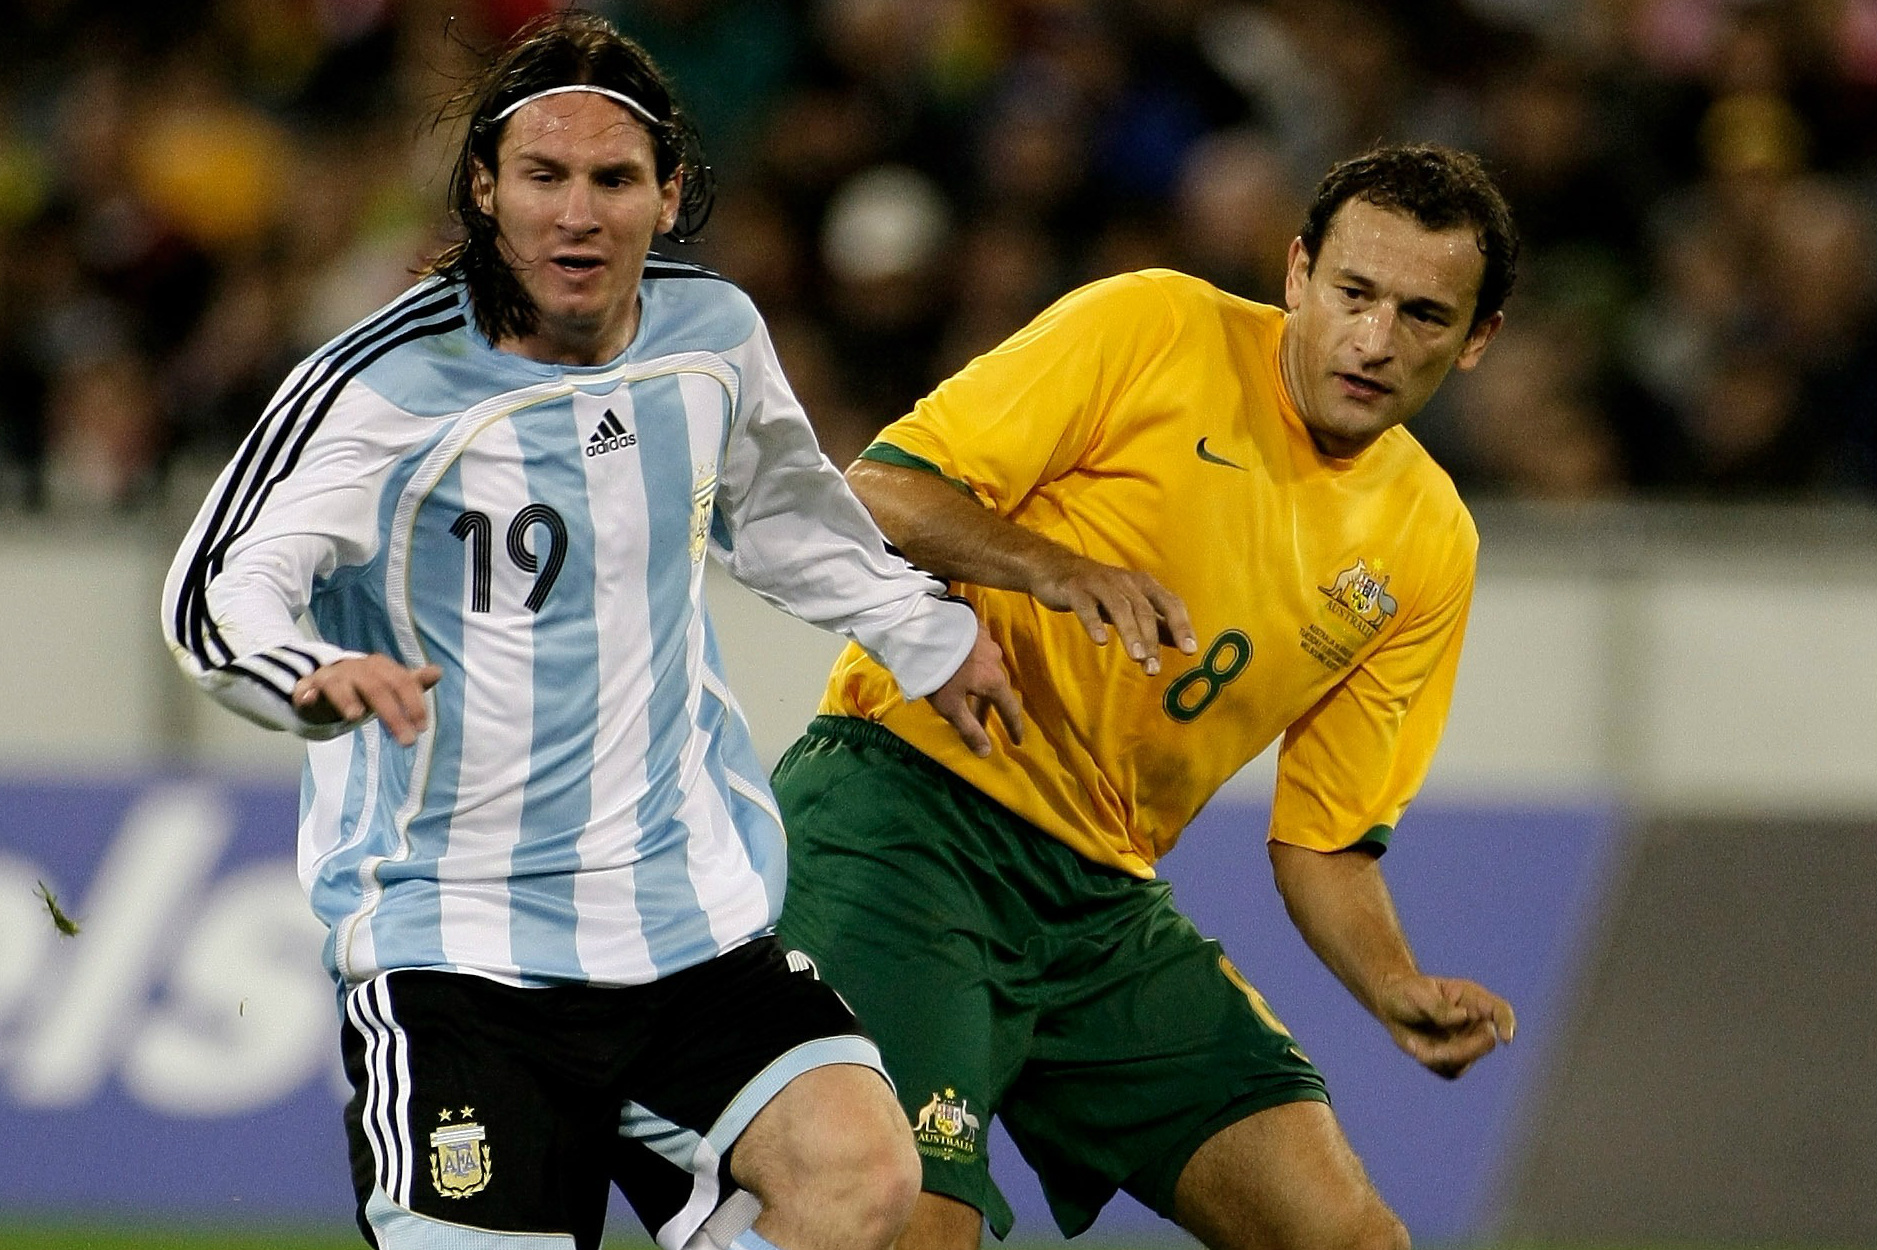 Josip Skoko up against Argentina superstar Lionel Messi.